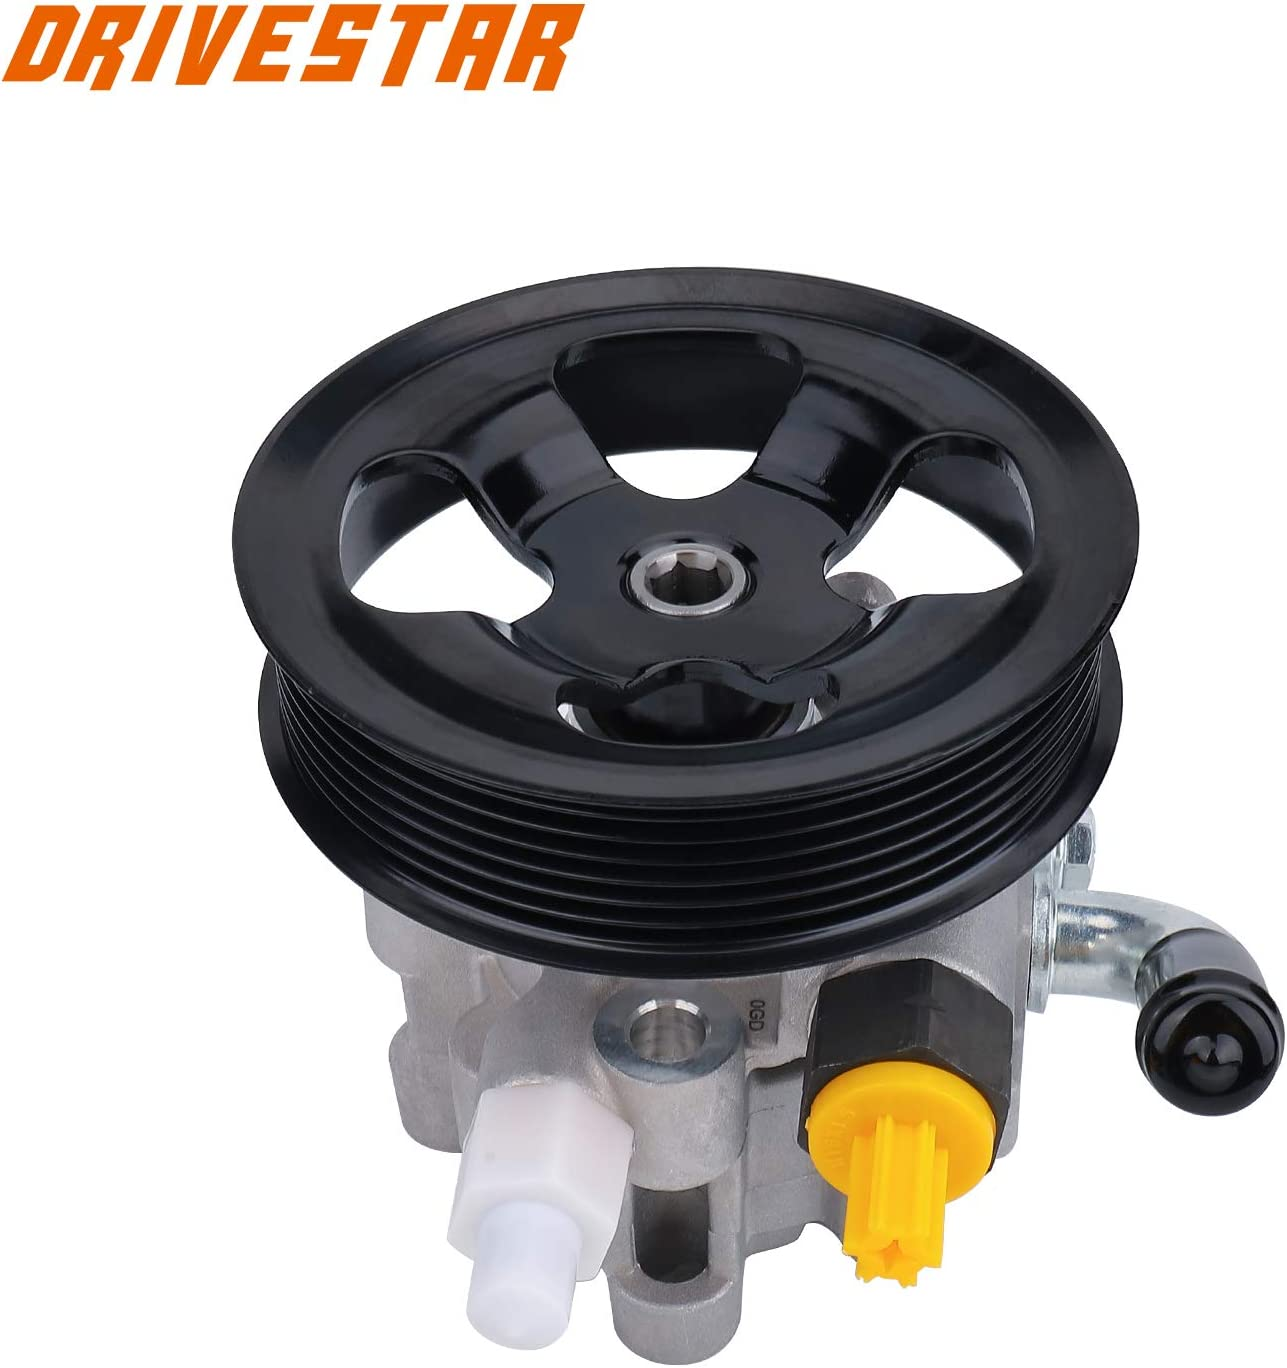 DRIVESTAR 21-5245 Power Steering Pump Pully 2 Popular overseas for with Selected 2021 model